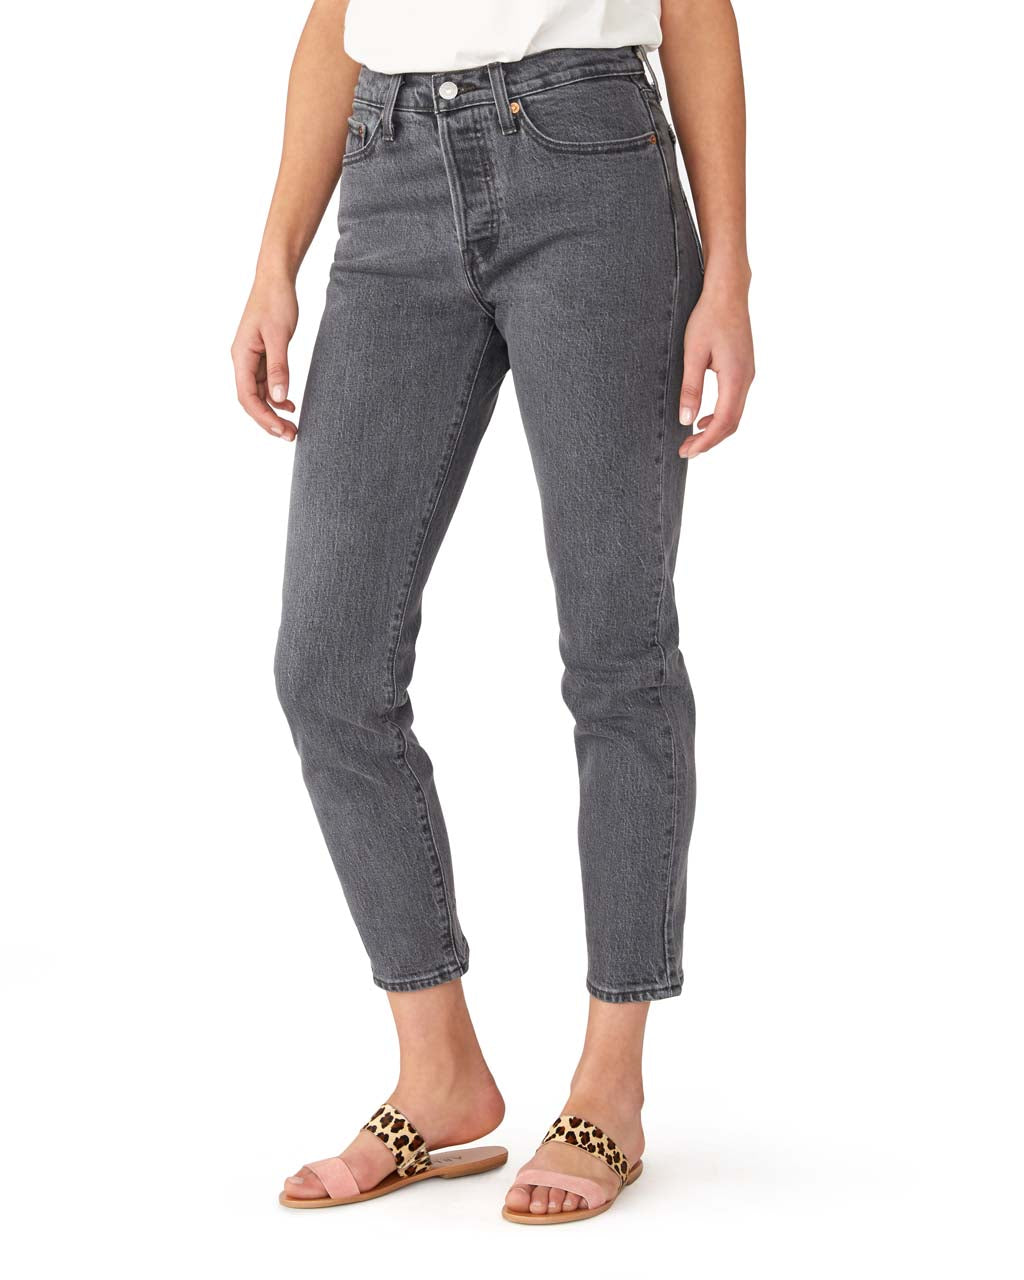 db668ac7be0415 Wedgie Icon Fit Jeans - Bite My Dust by levi's - jeans - ban.do